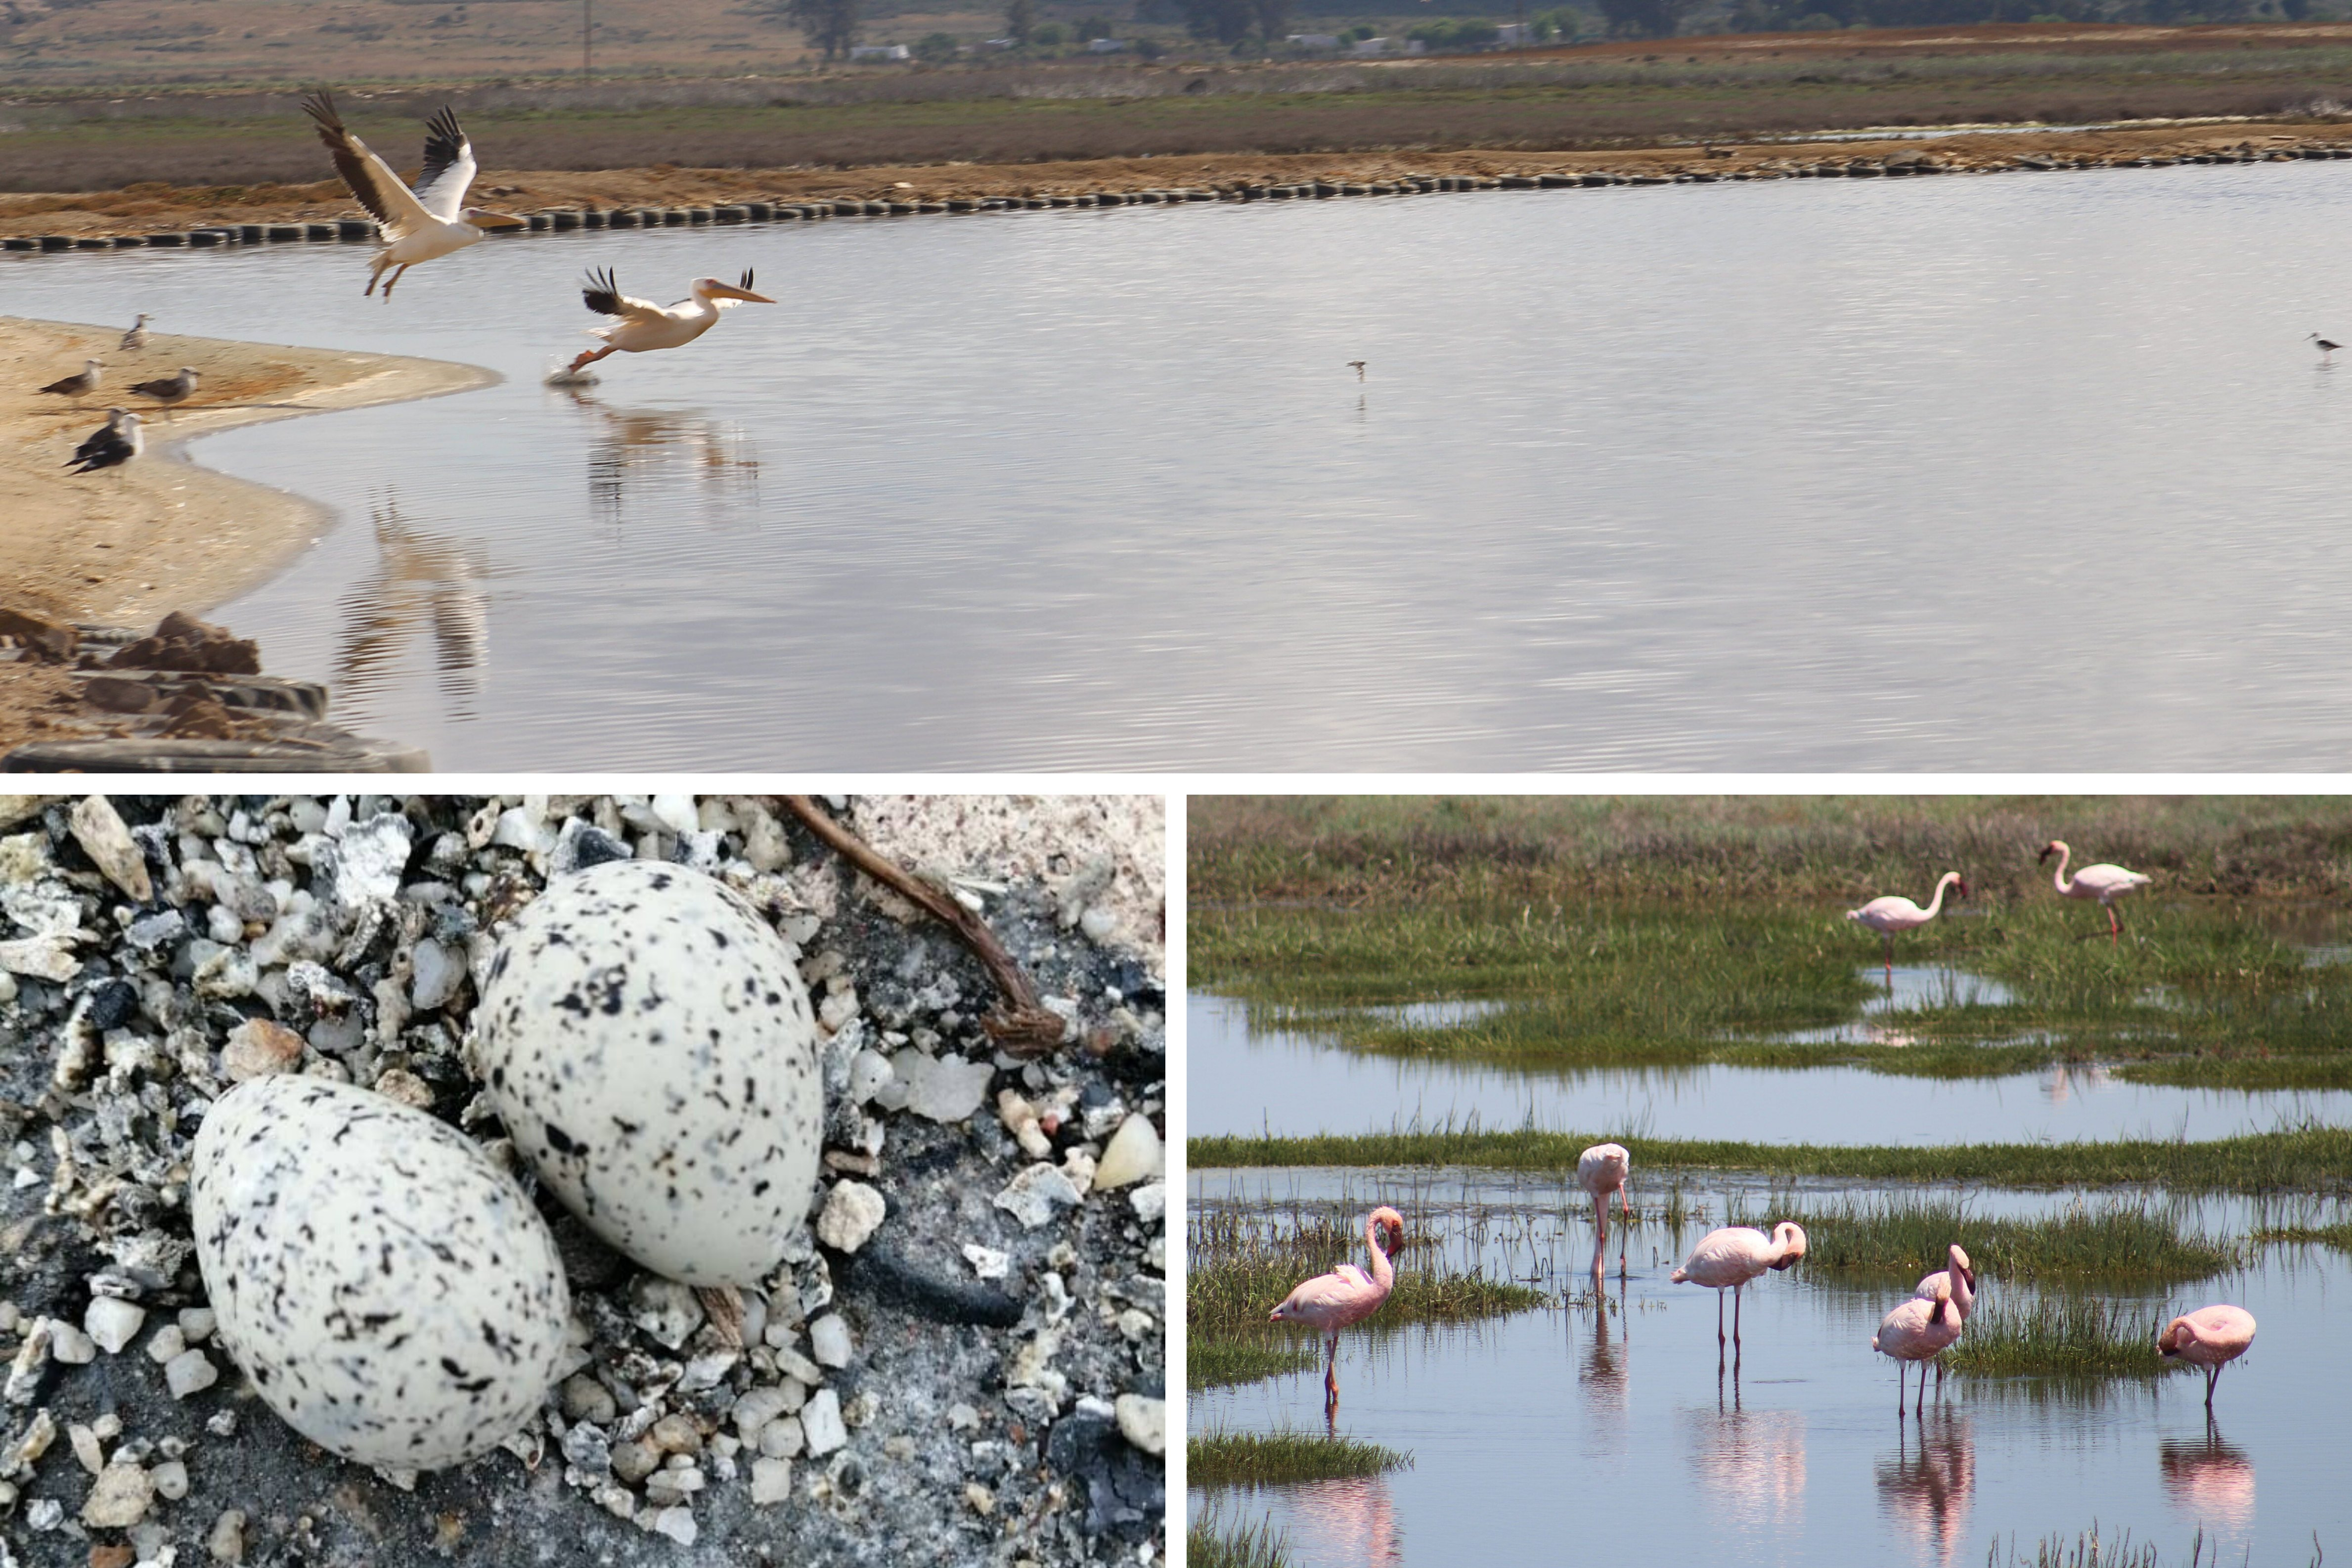 Kuifkopvisvanger - Birding, self catering accommodation in Velddrif, Berg River 3